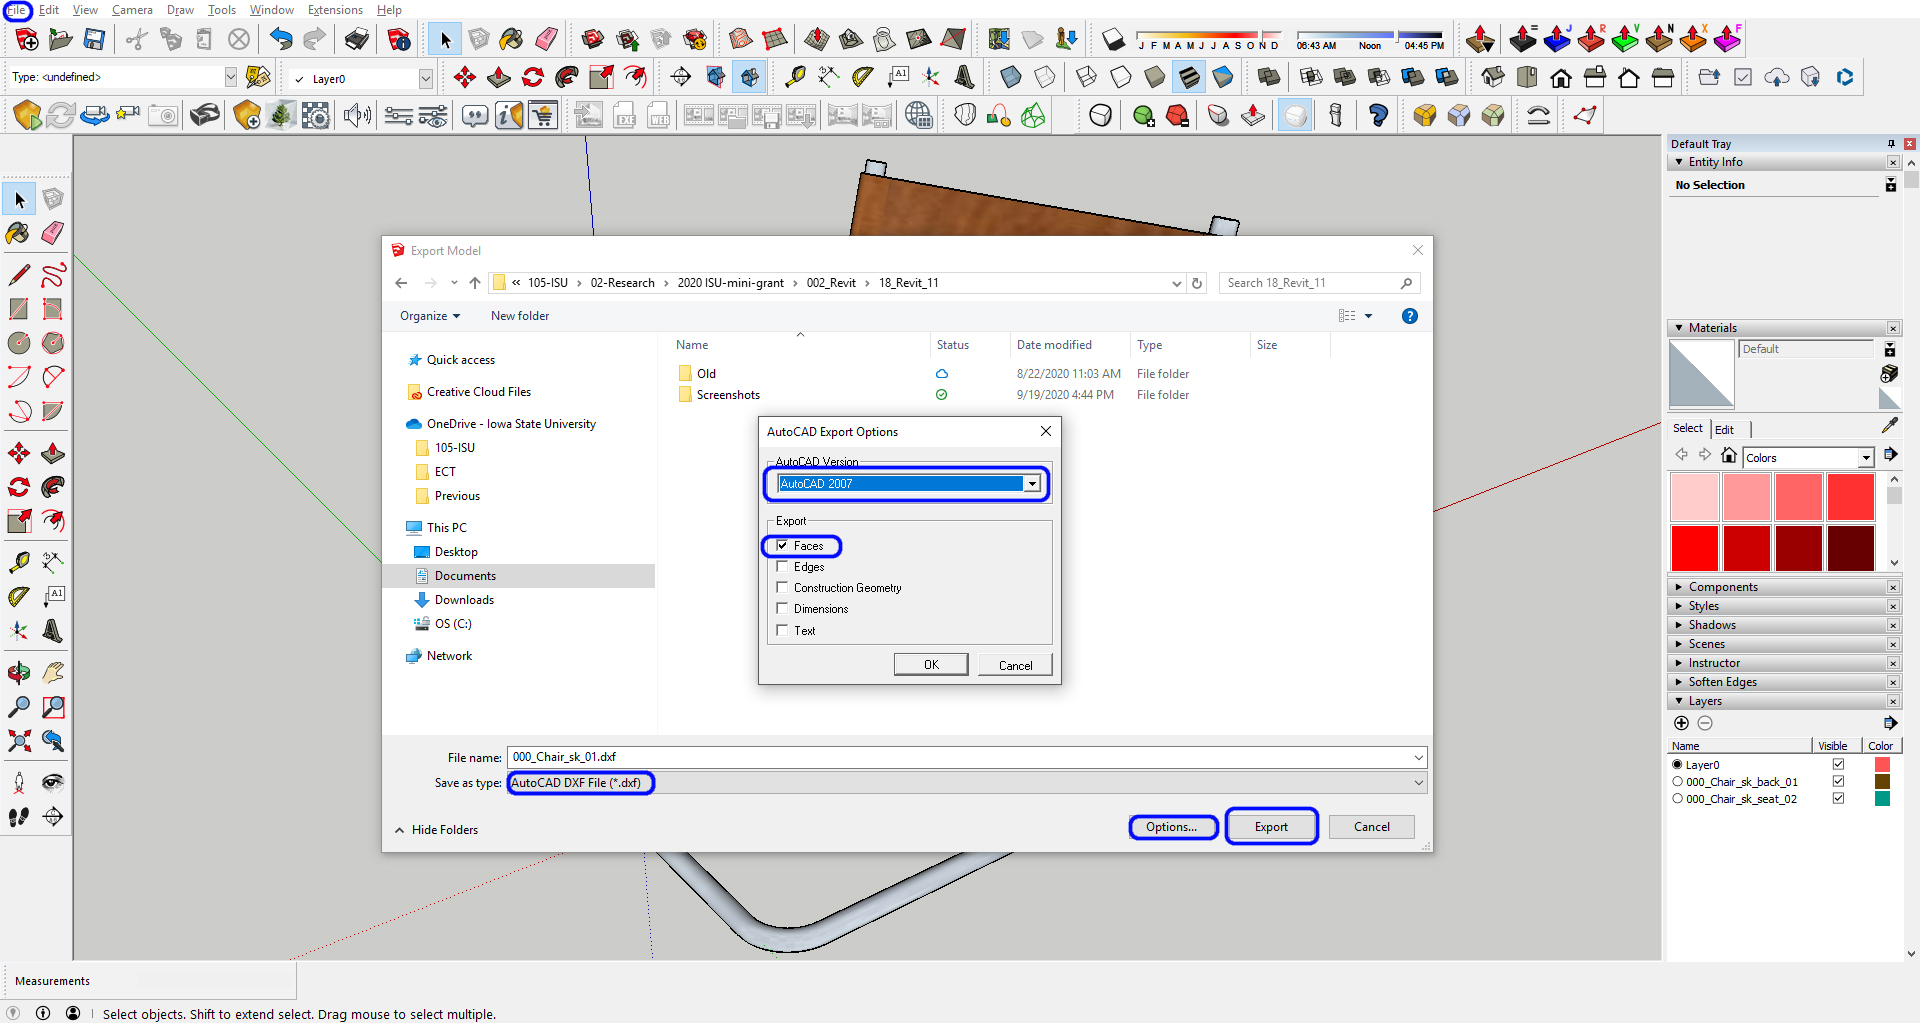 It indicates how to export the file to a dxf file format.